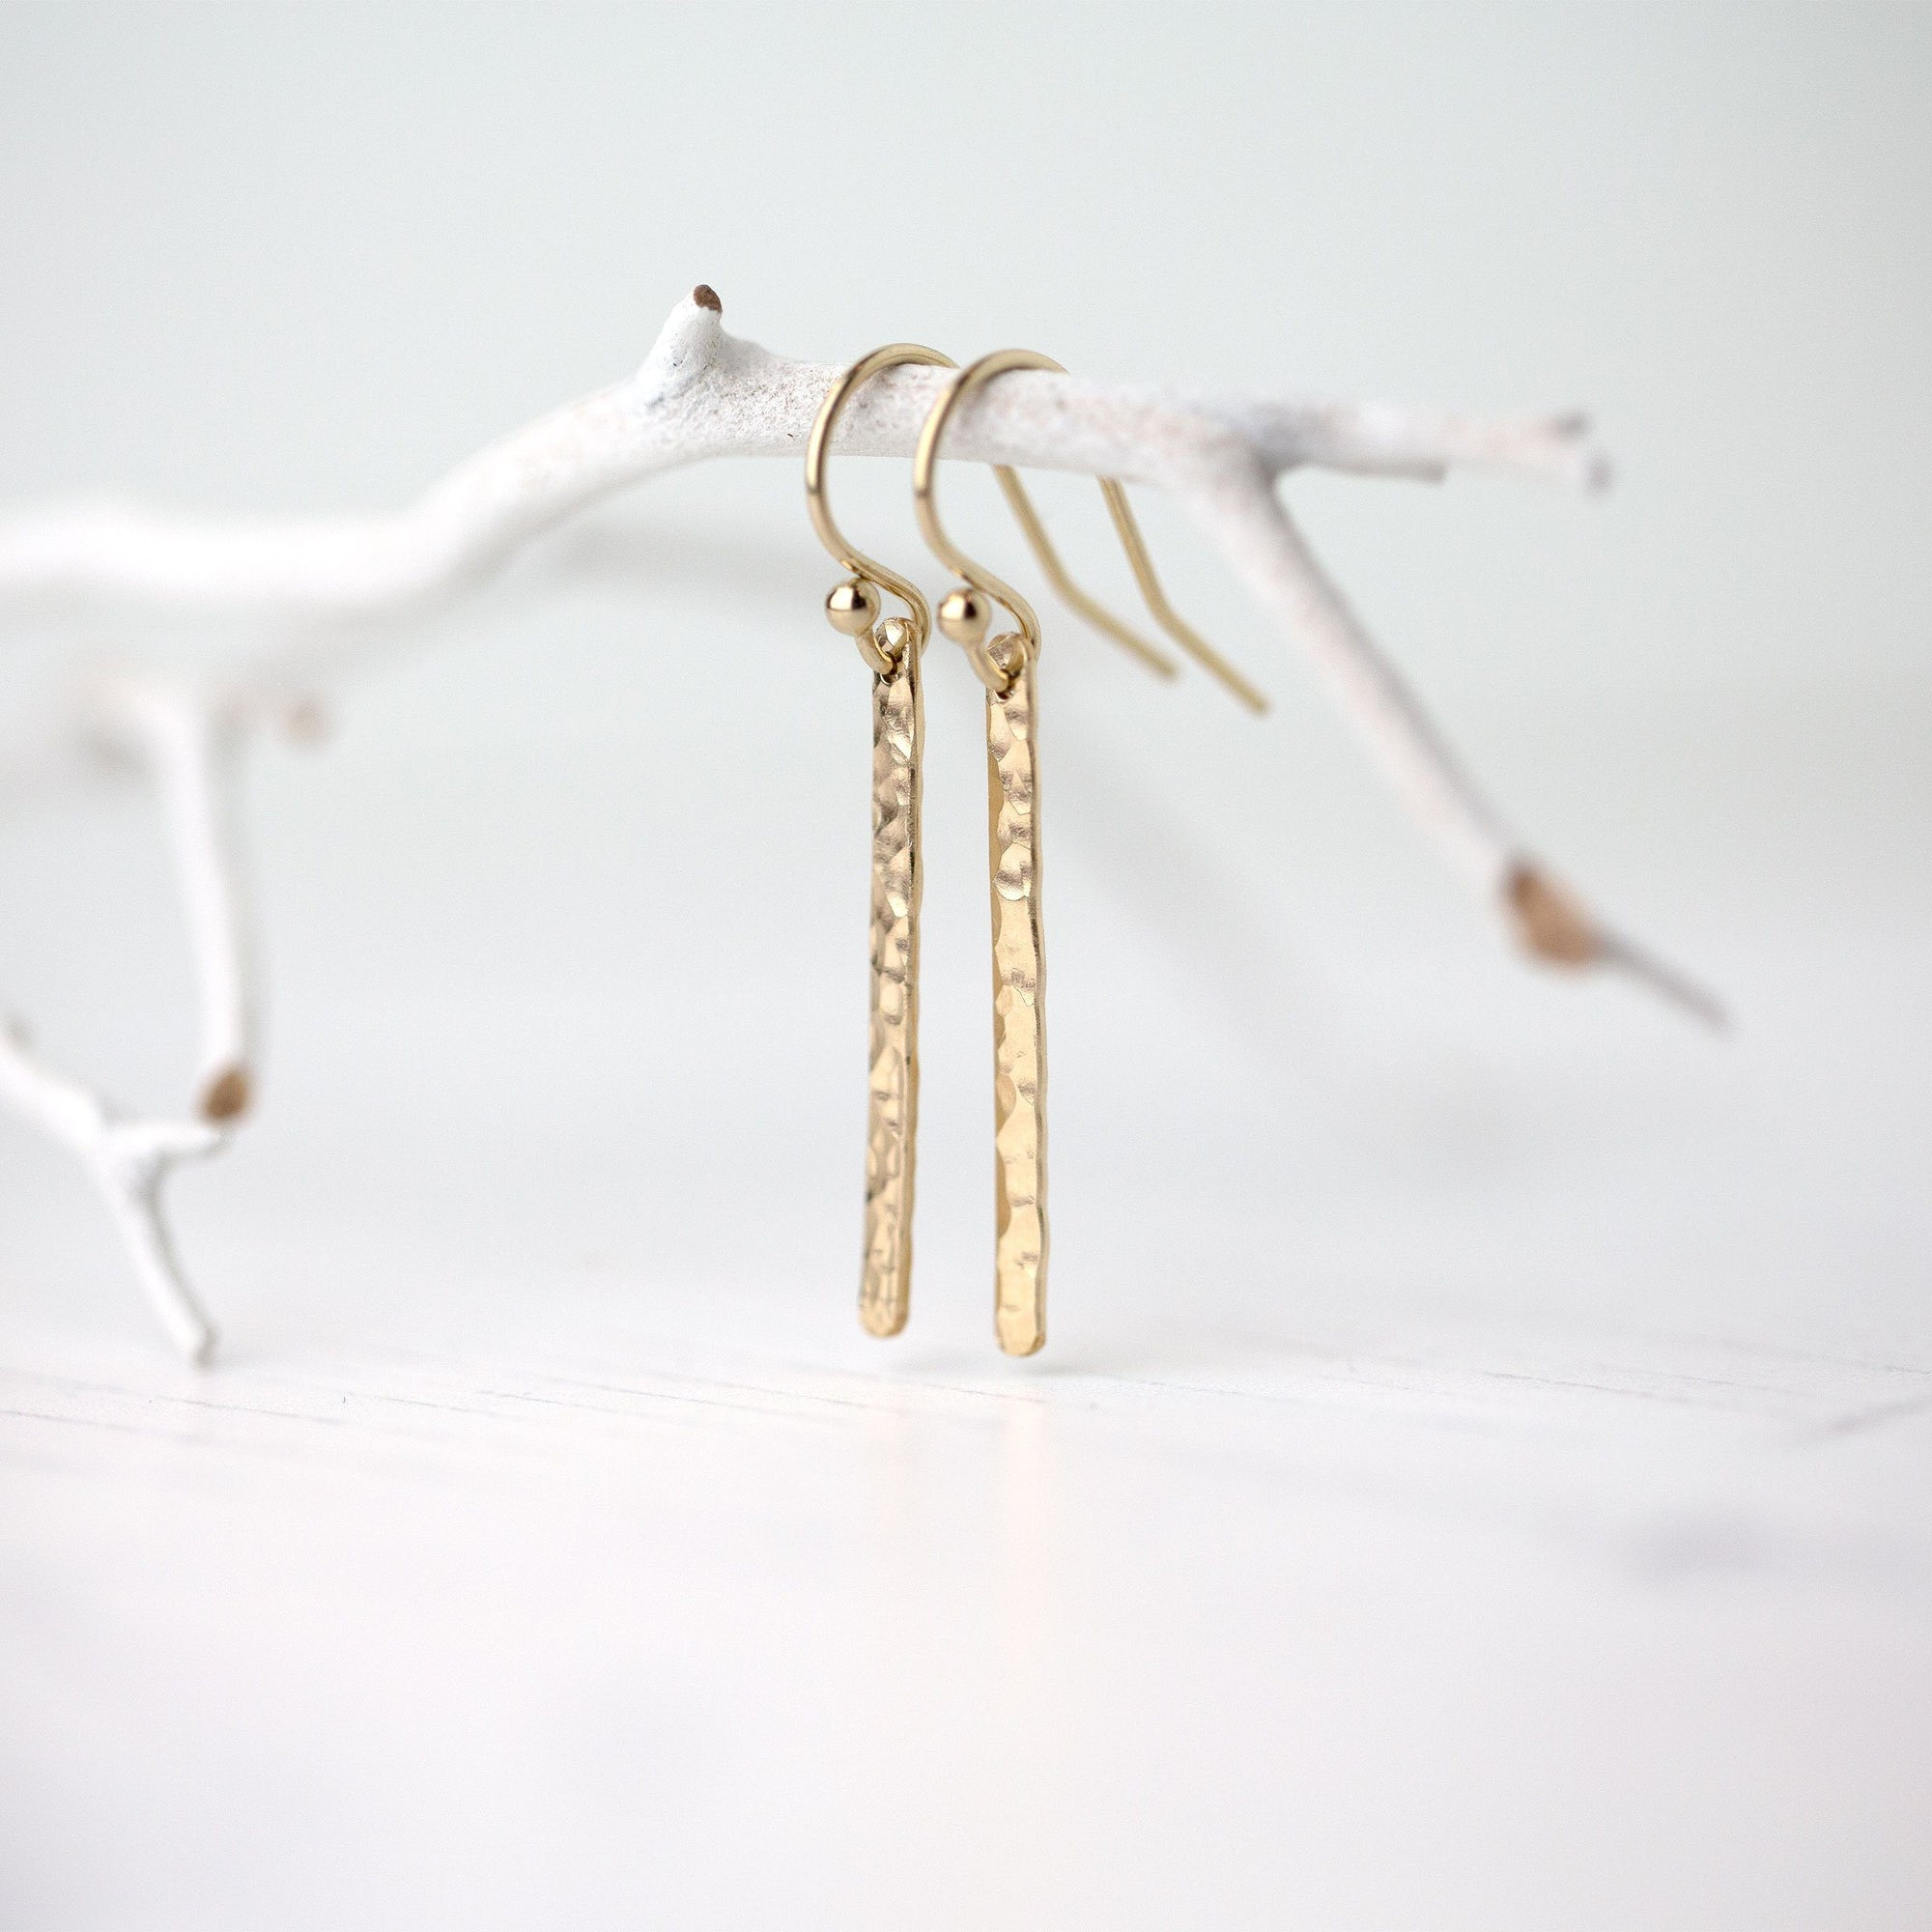 Gold Slim Bar Earrings - Handmade Jewelry by Burnish